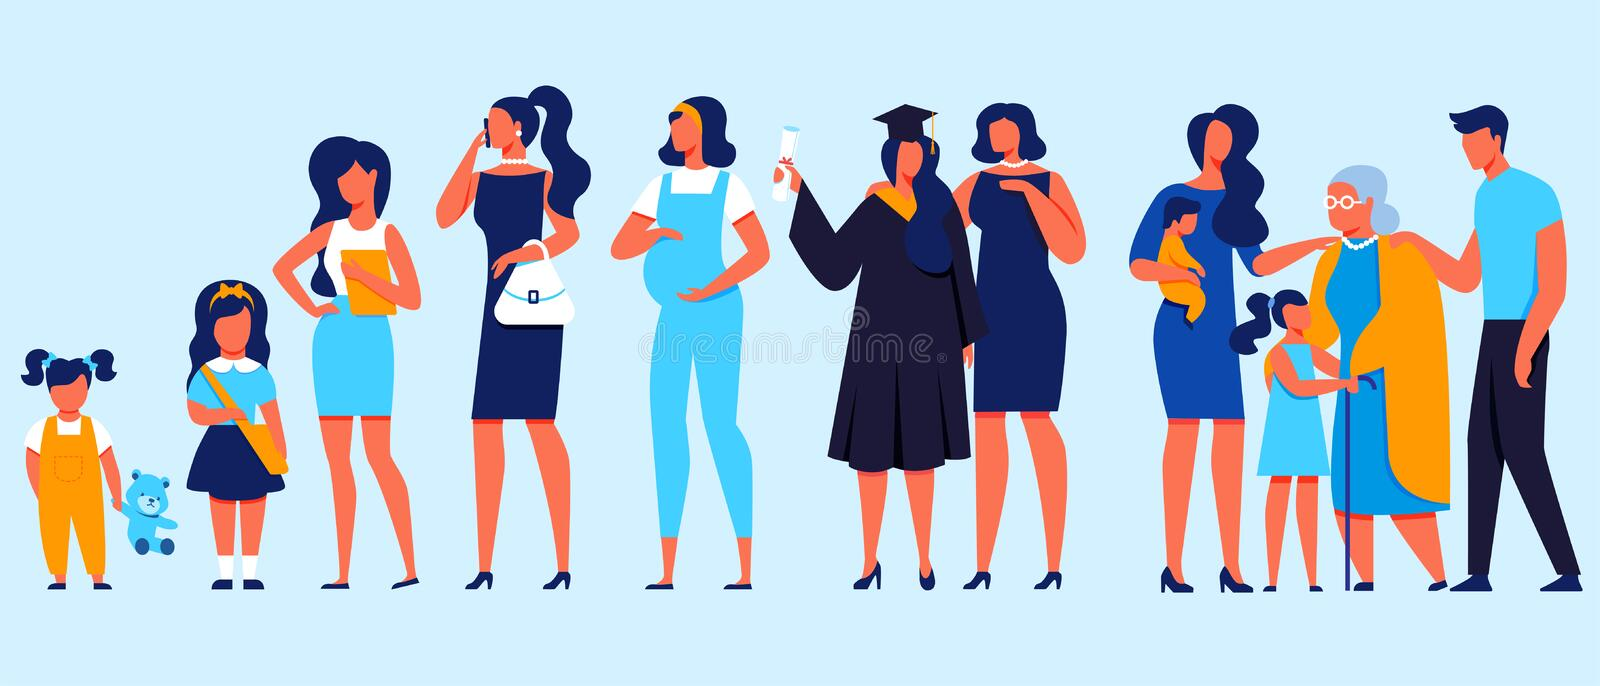 Woman in Different Ages. Life Cycle, Time Line. Woman Different Ages. Baby, Child, Teenager, Student, Pregnant, Graduating, Adult, Elderly Person. Life Cycle vector illustration